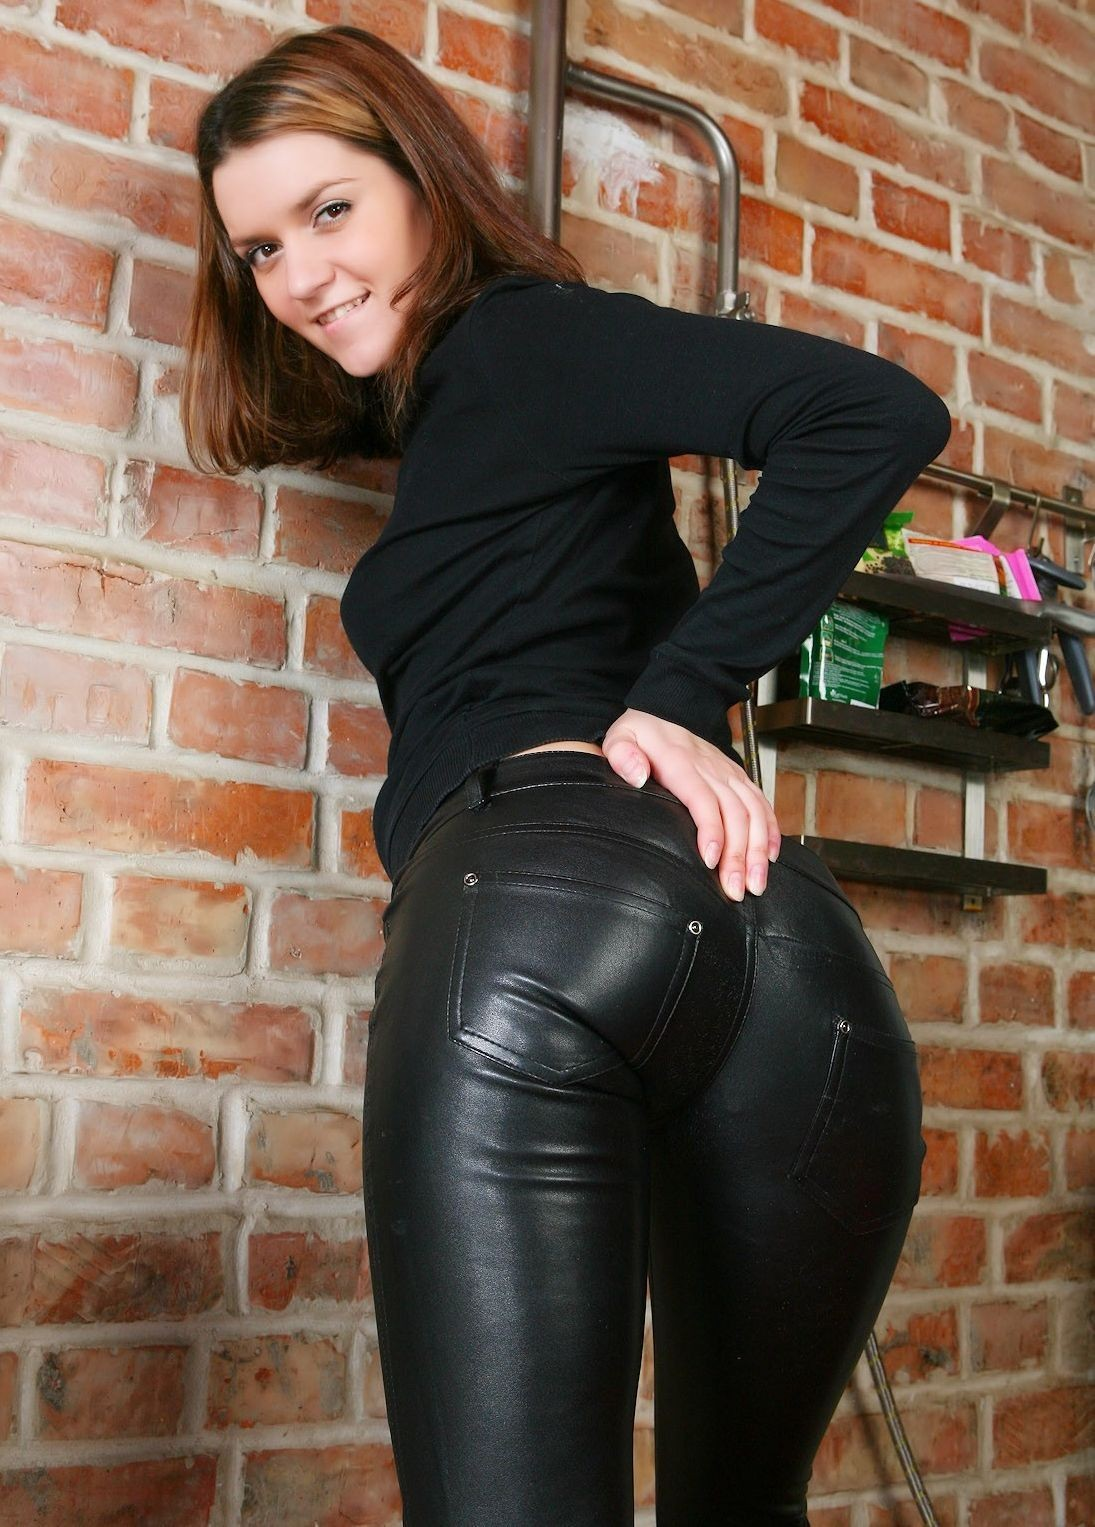 pants tight Hot girl leather